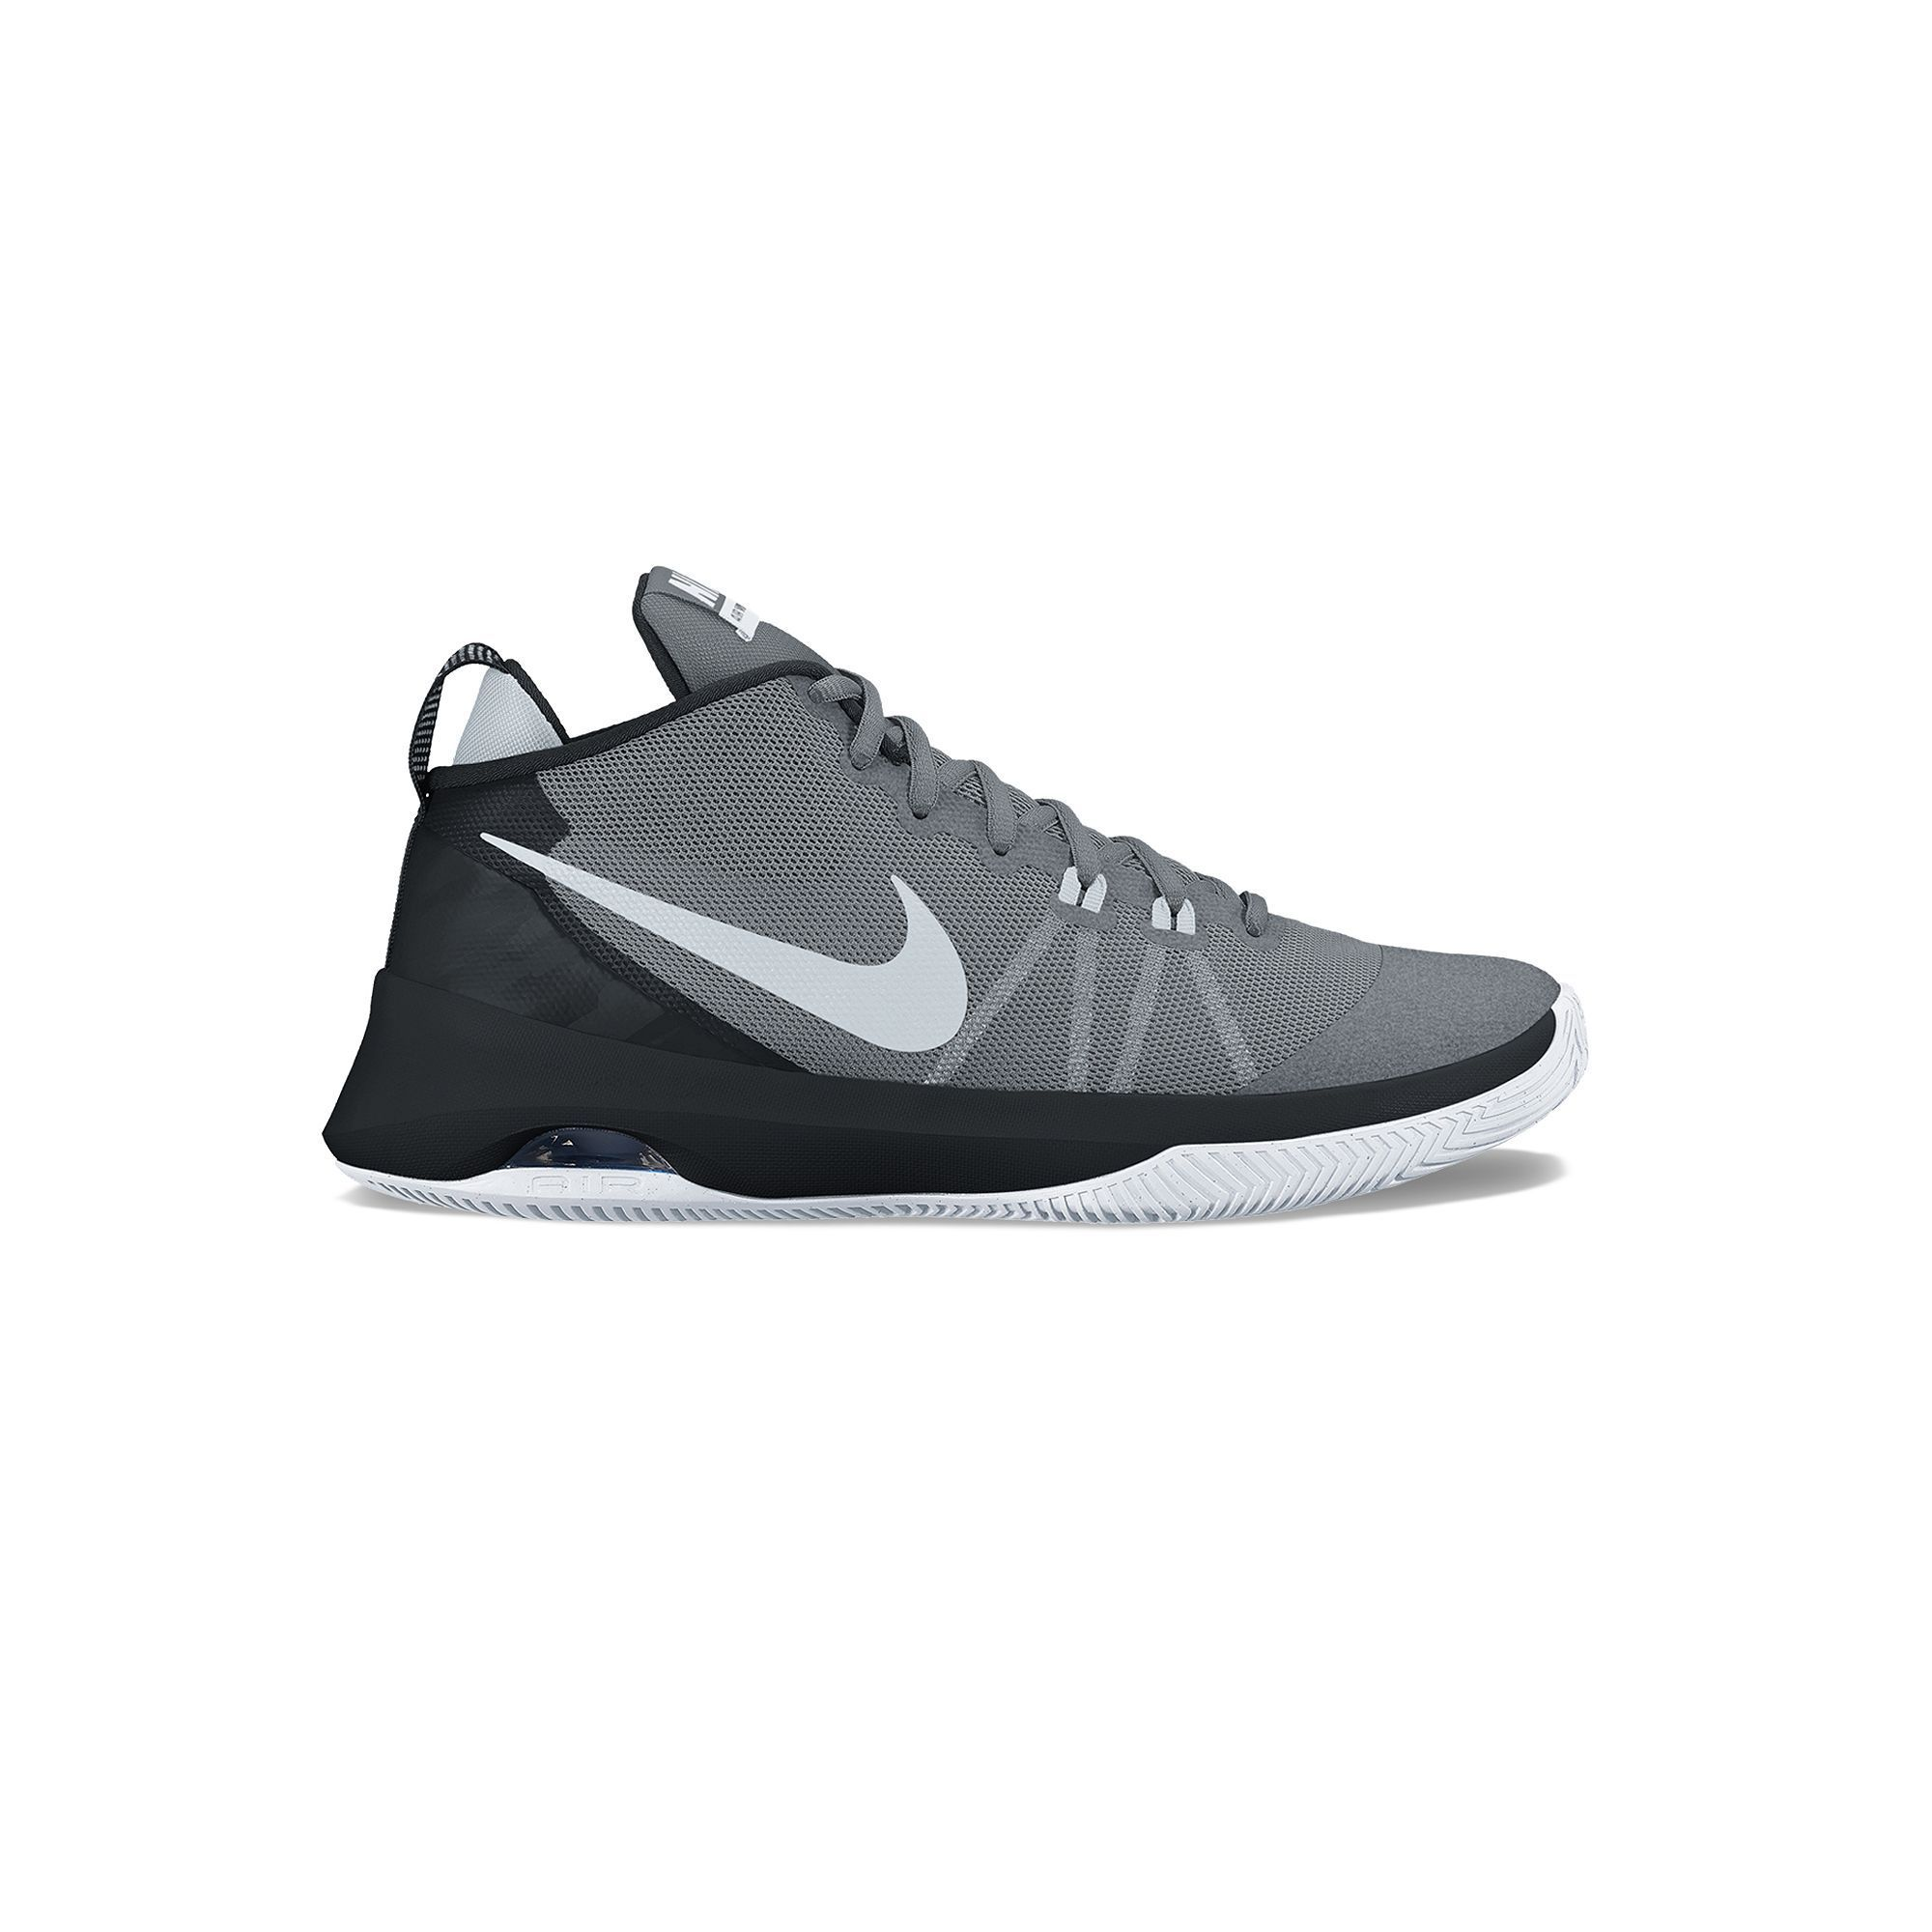 62901bdaa5908 Nike Air Versitile Men s Basketball Shoes